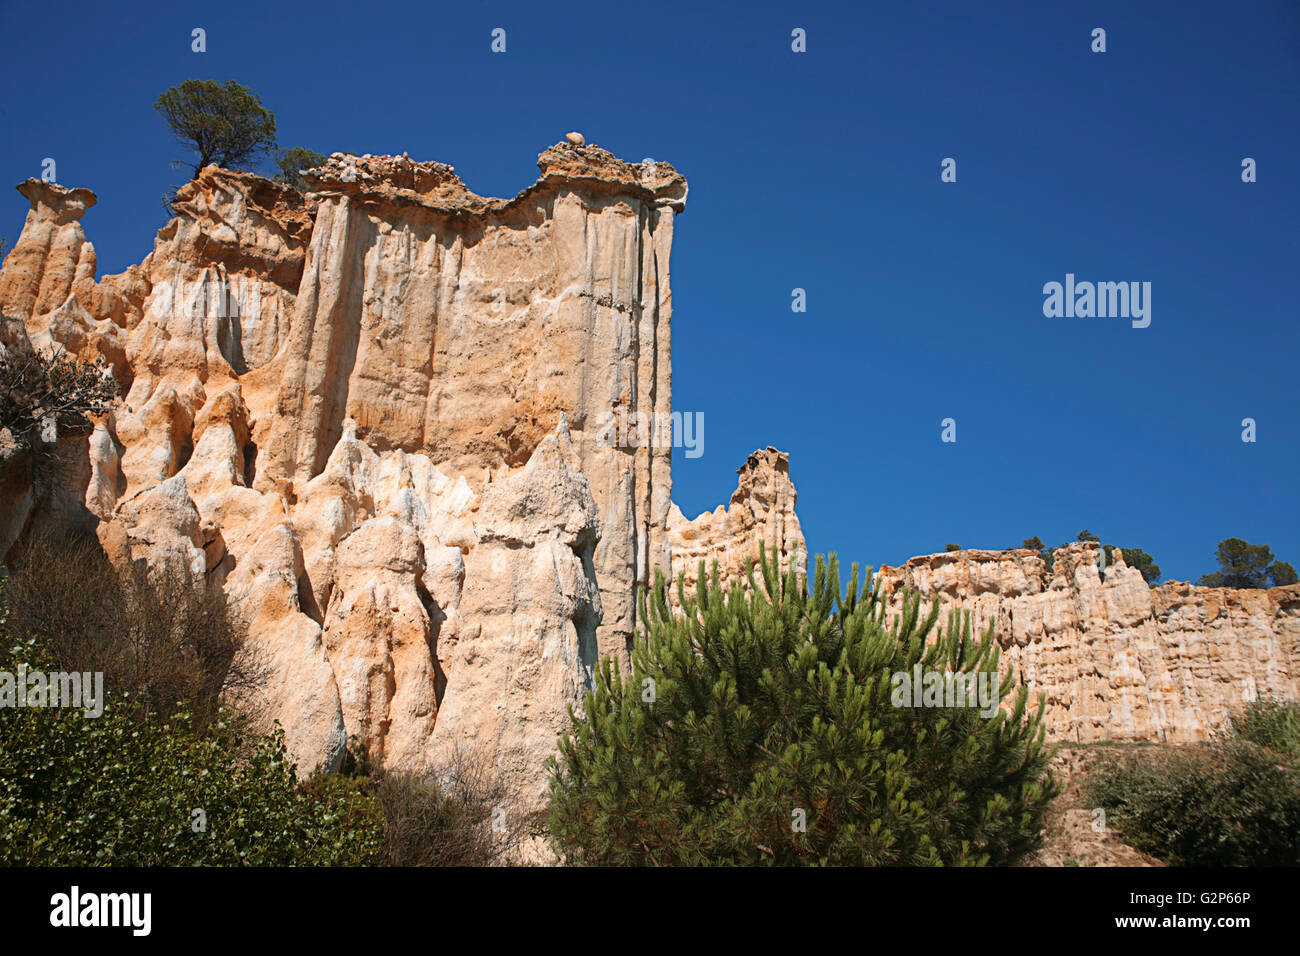 Les Orgues Sandstone Pillars Eroded By Water And Wind Ille Sur Tet